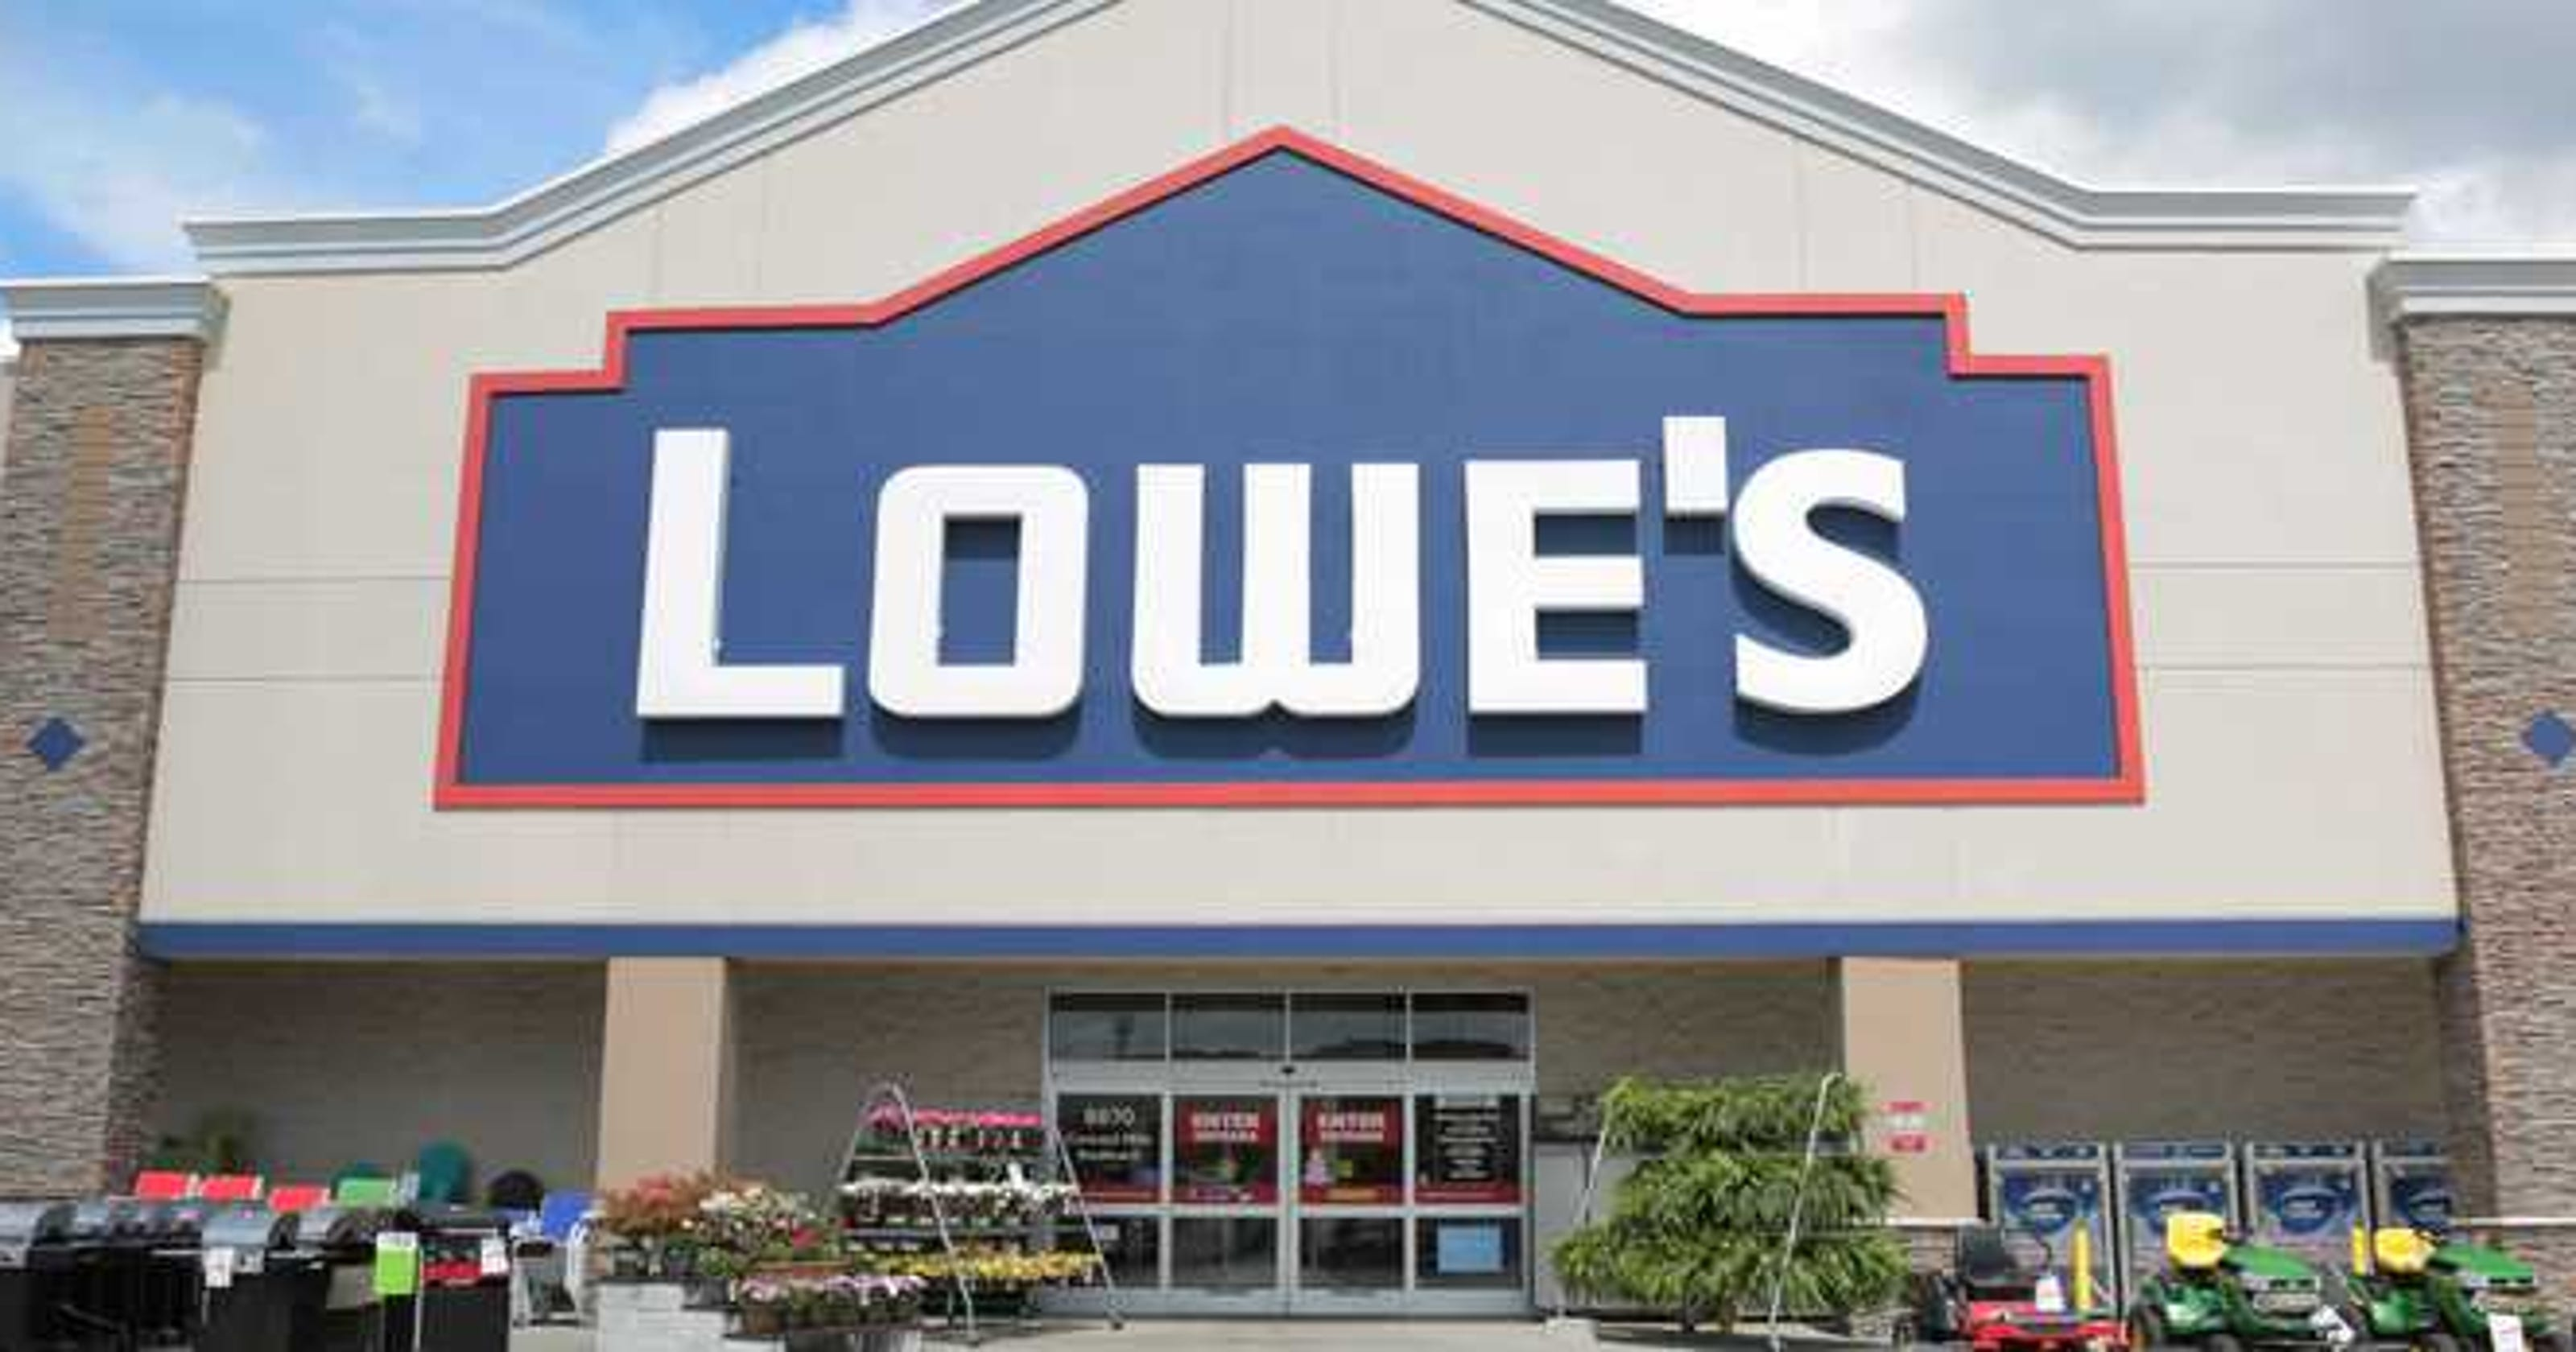 List of Lowe's stores closing: Company says 20 to shutter next year